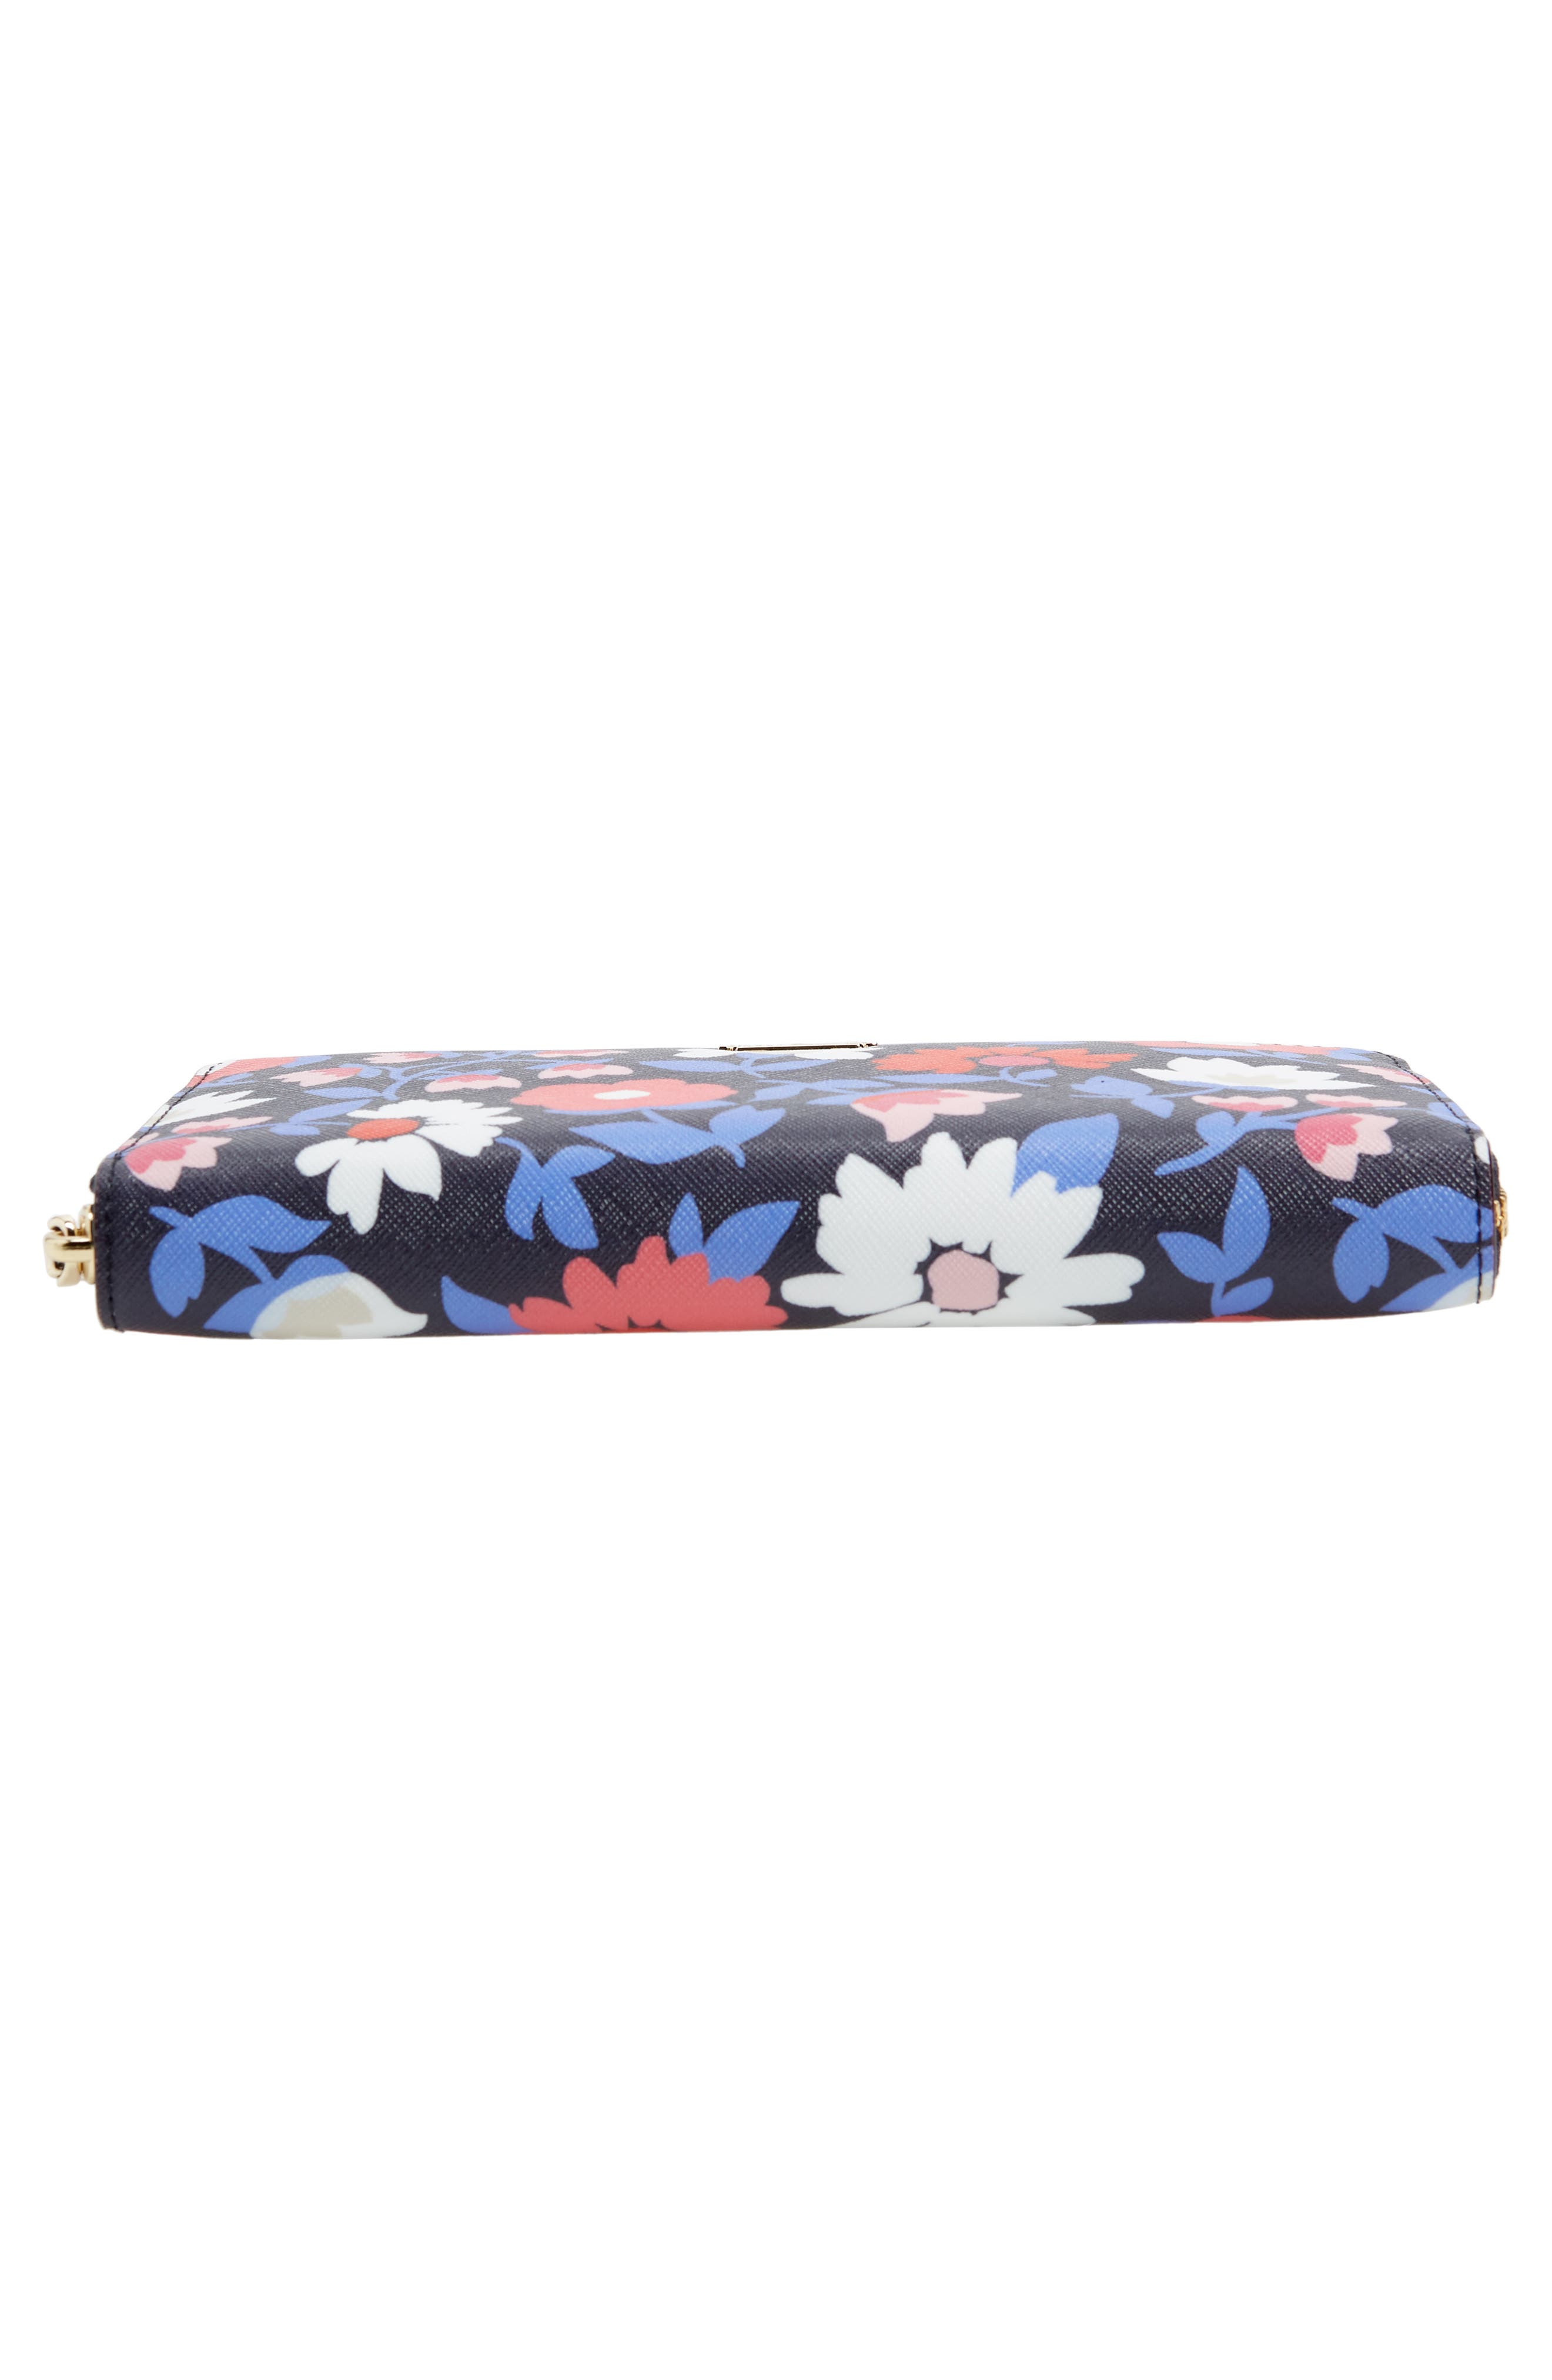 cameron street - daisy lacey zip around wallet,                             Alternate thumbnail 6, color,                             650